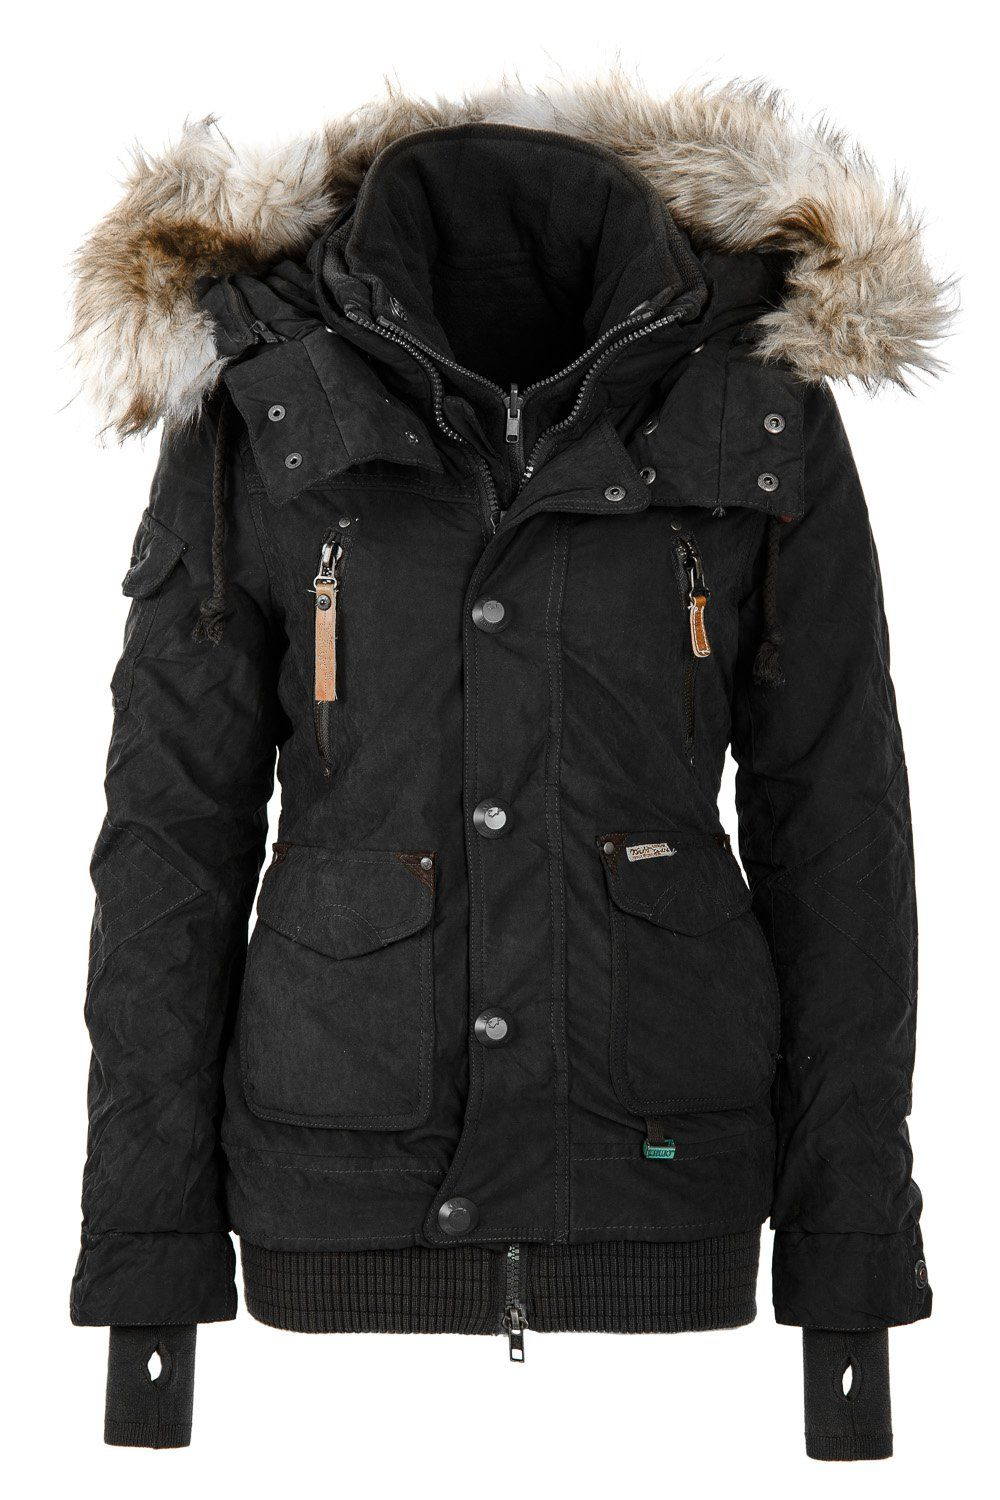 Women Winter Jackets: Choosing the Best Jacket for Winter | All ...